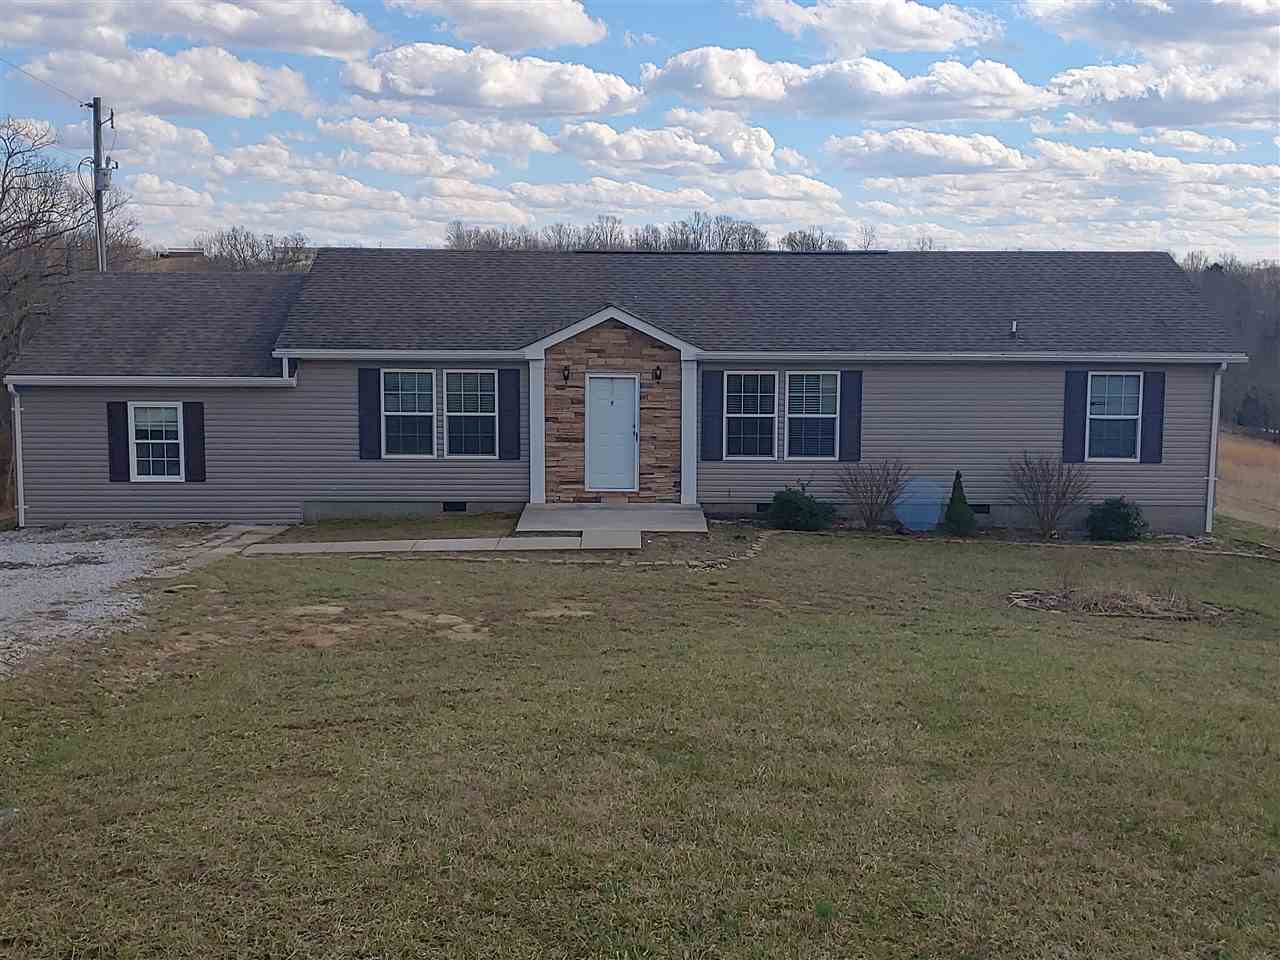 Photo 3 for 17735 New Columbus Rd Corinth, KY 41010